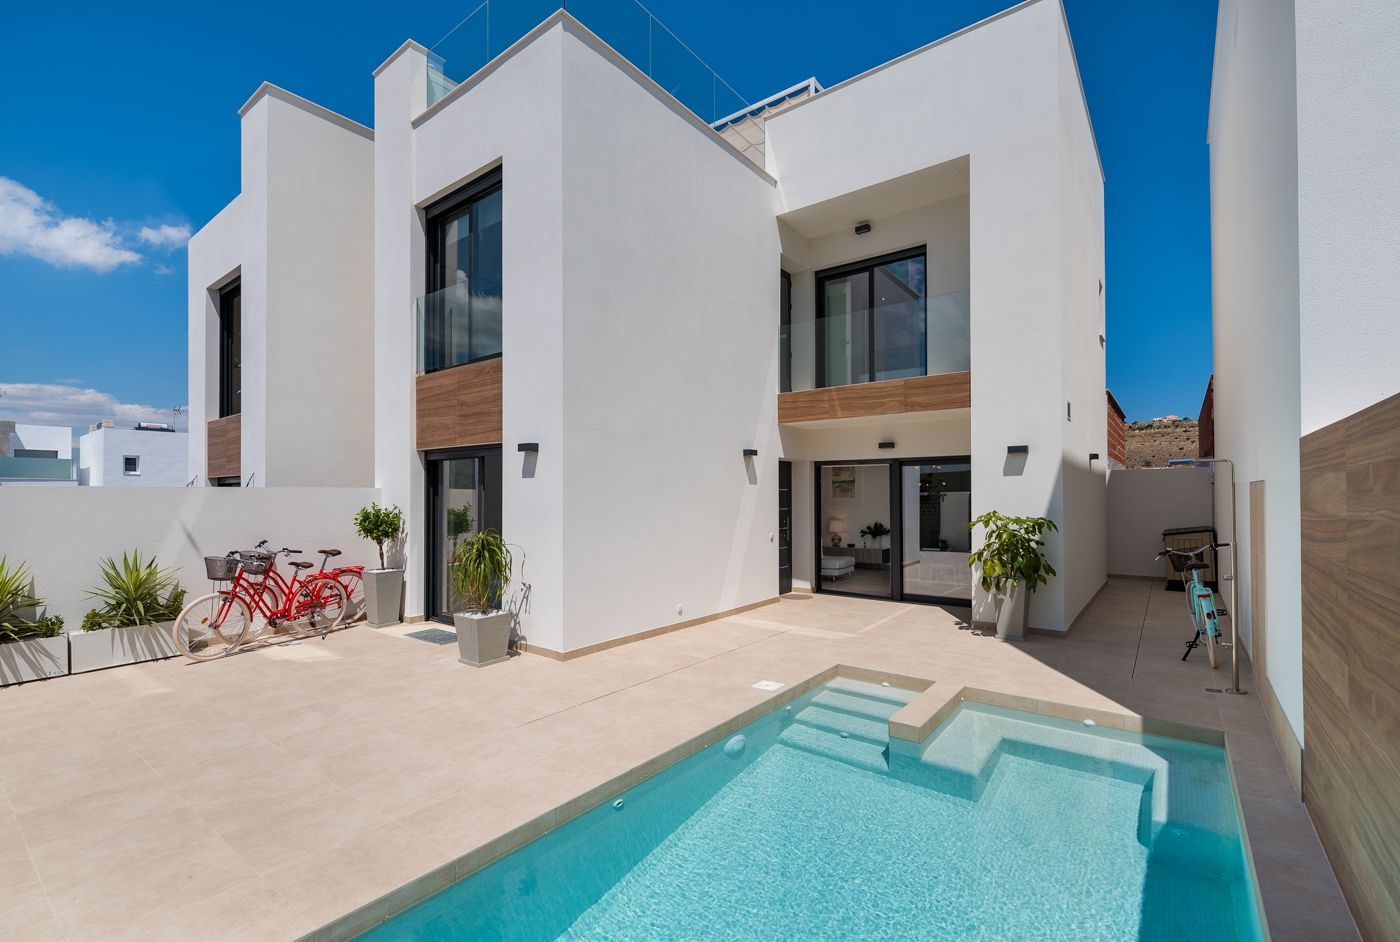 Villas in Ciudad Quesada with 3 bedrooms and optional swimming pool